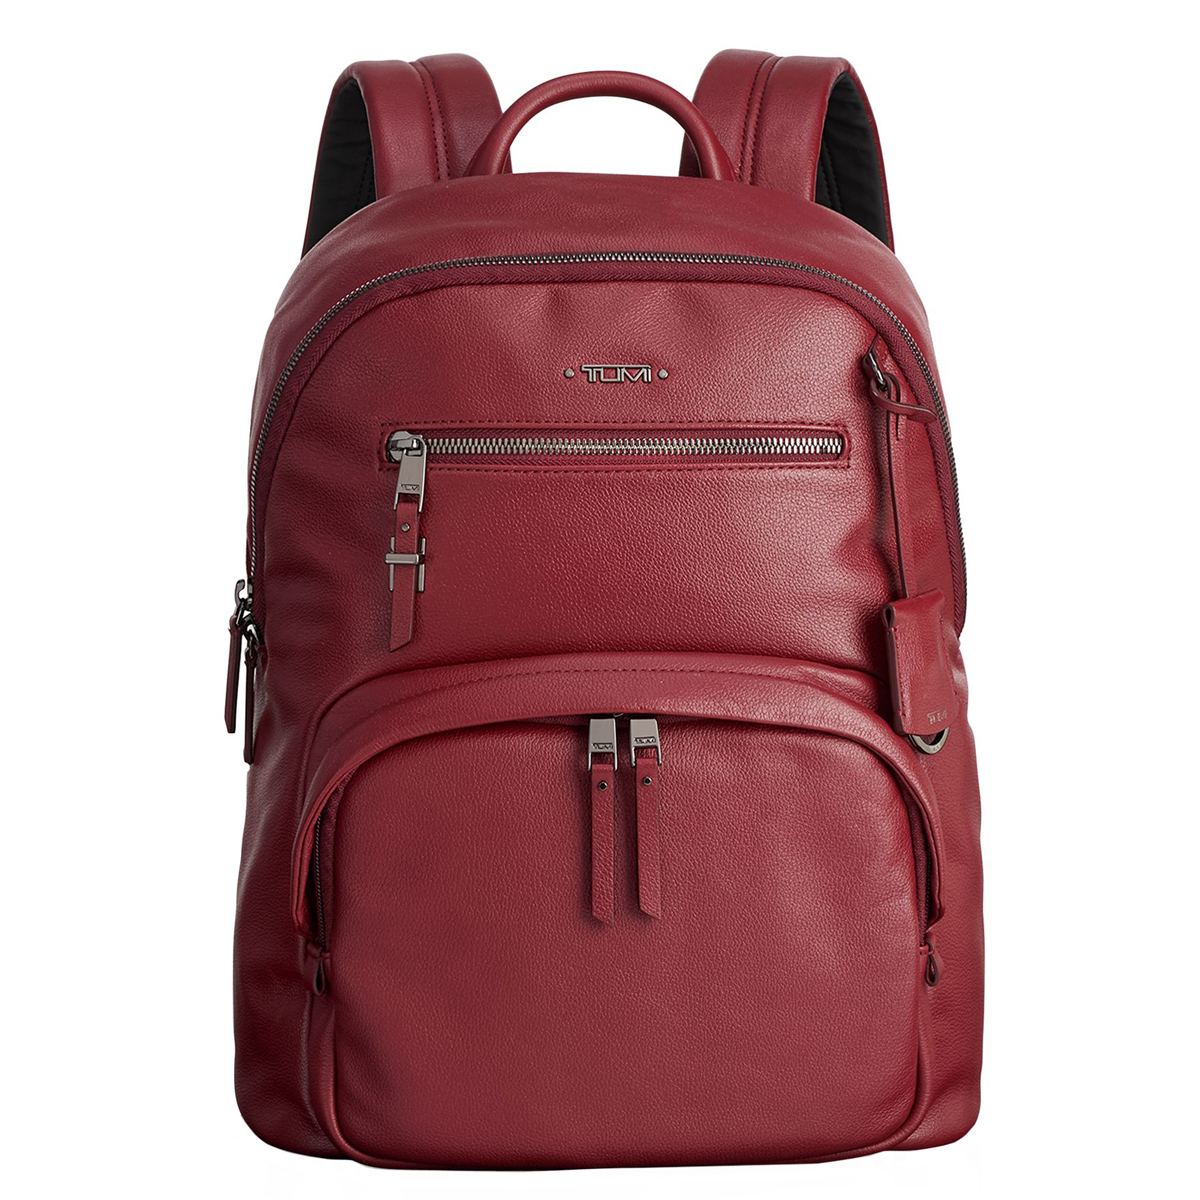 Tumi Voyageur Brick Red Leather Hagen Backpack 1100181129